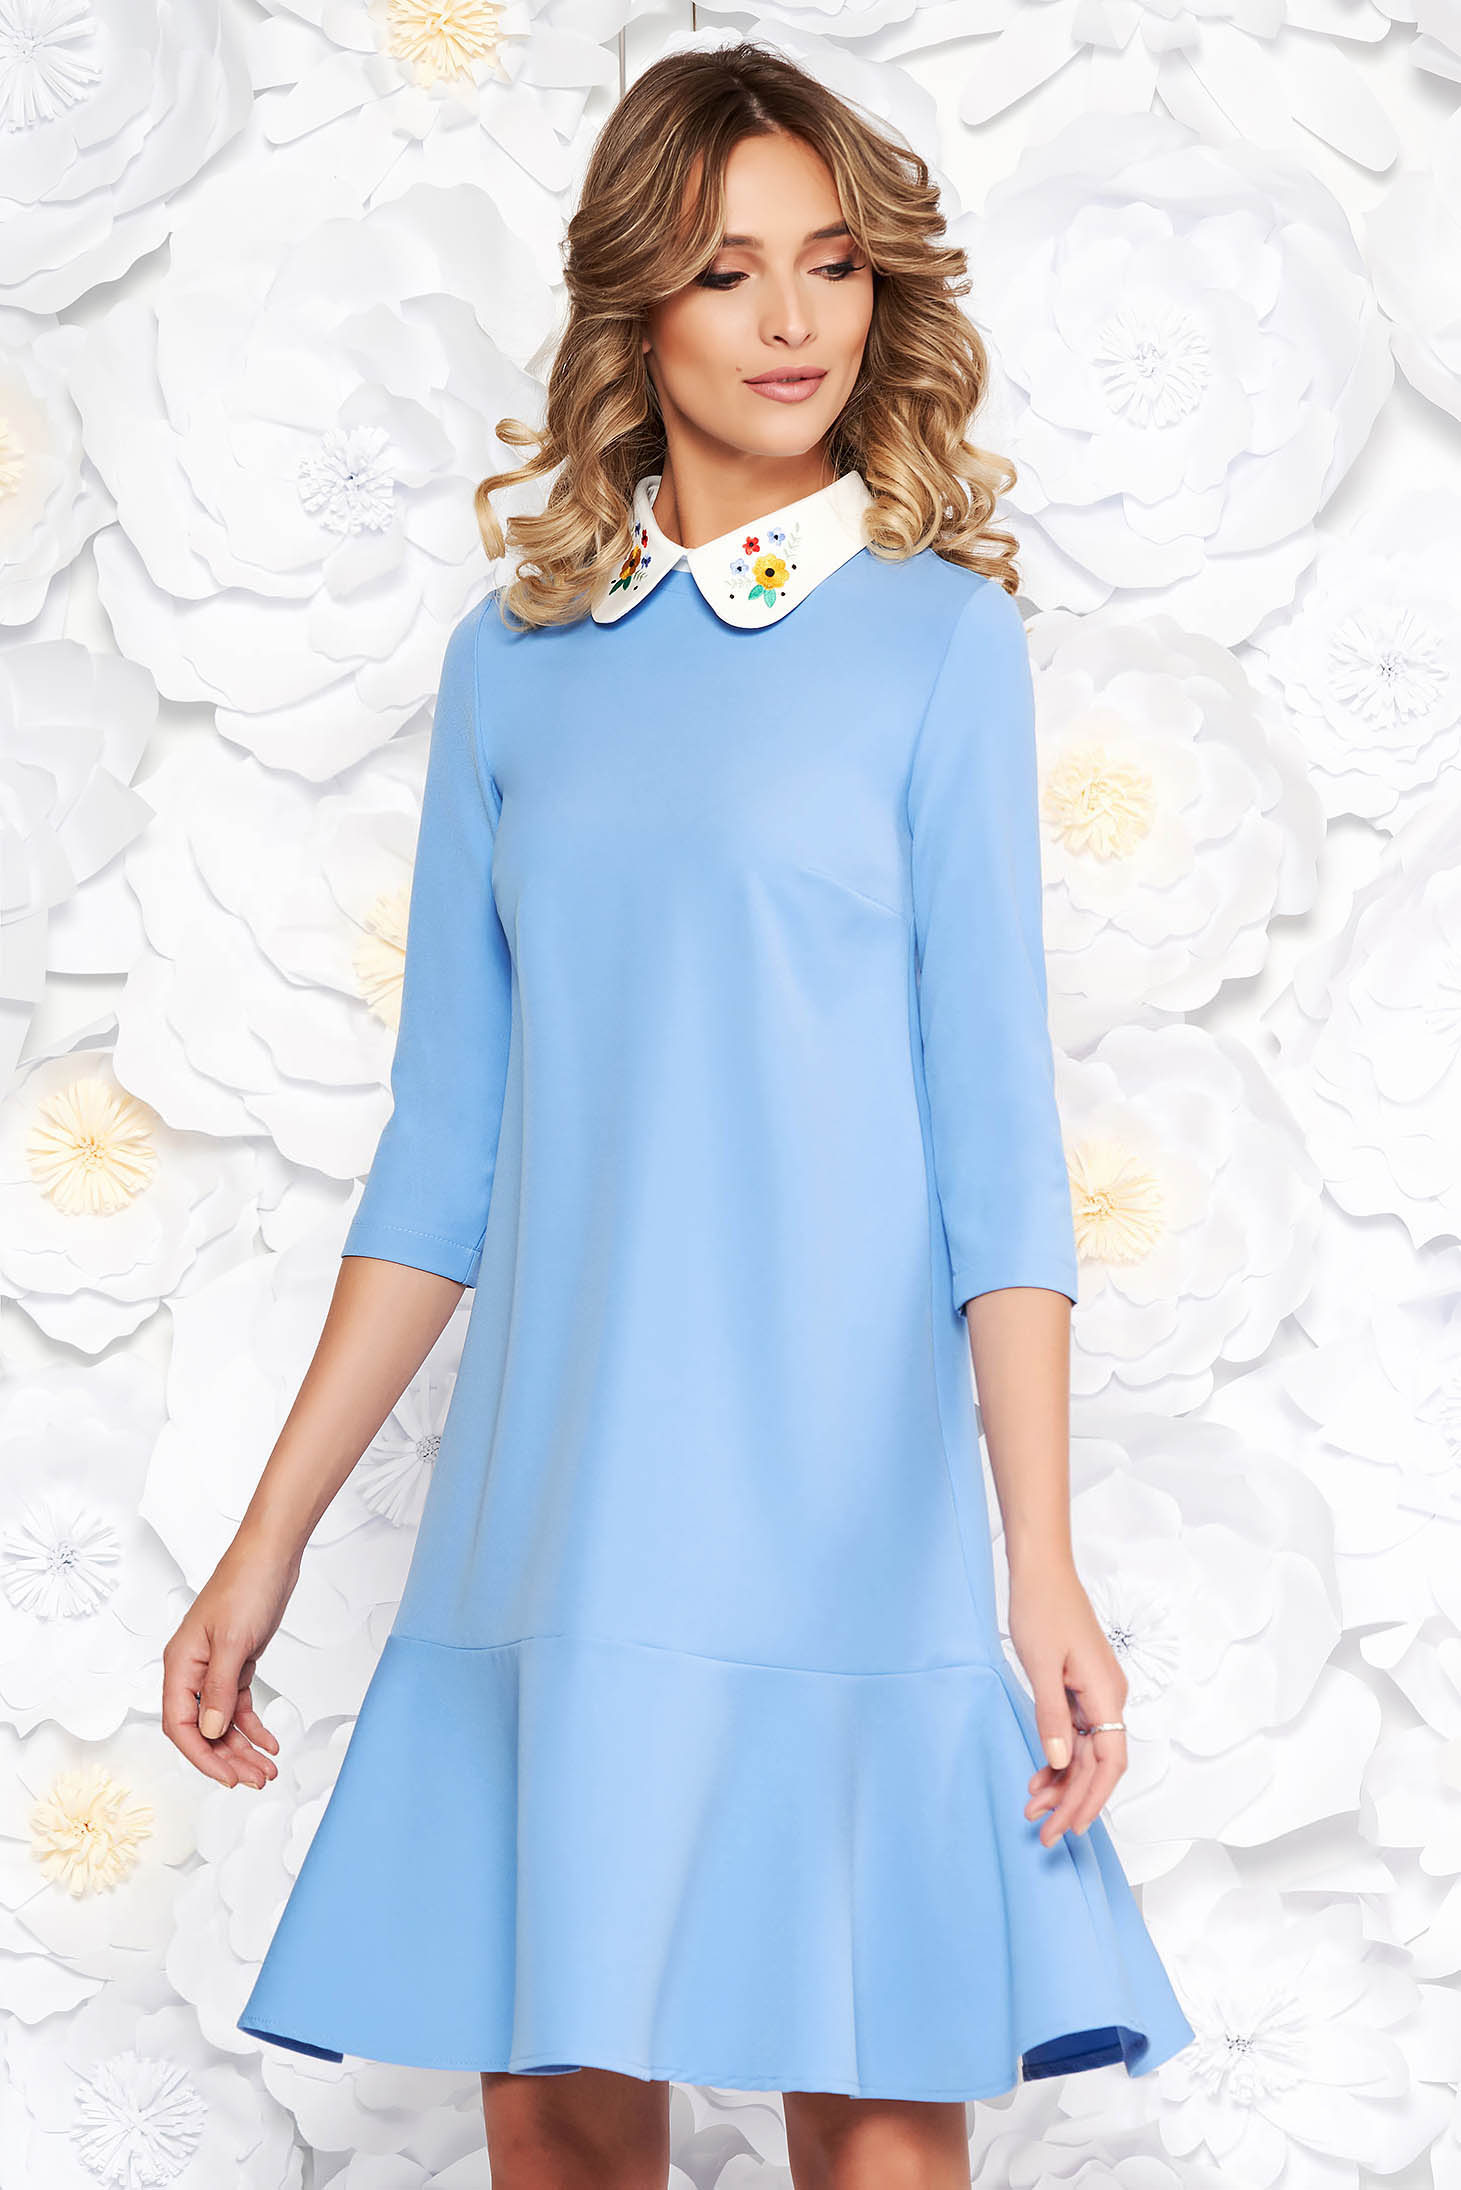 StarShinerS blue elegant flared dress slightly elastic fabric with round collar embroidered